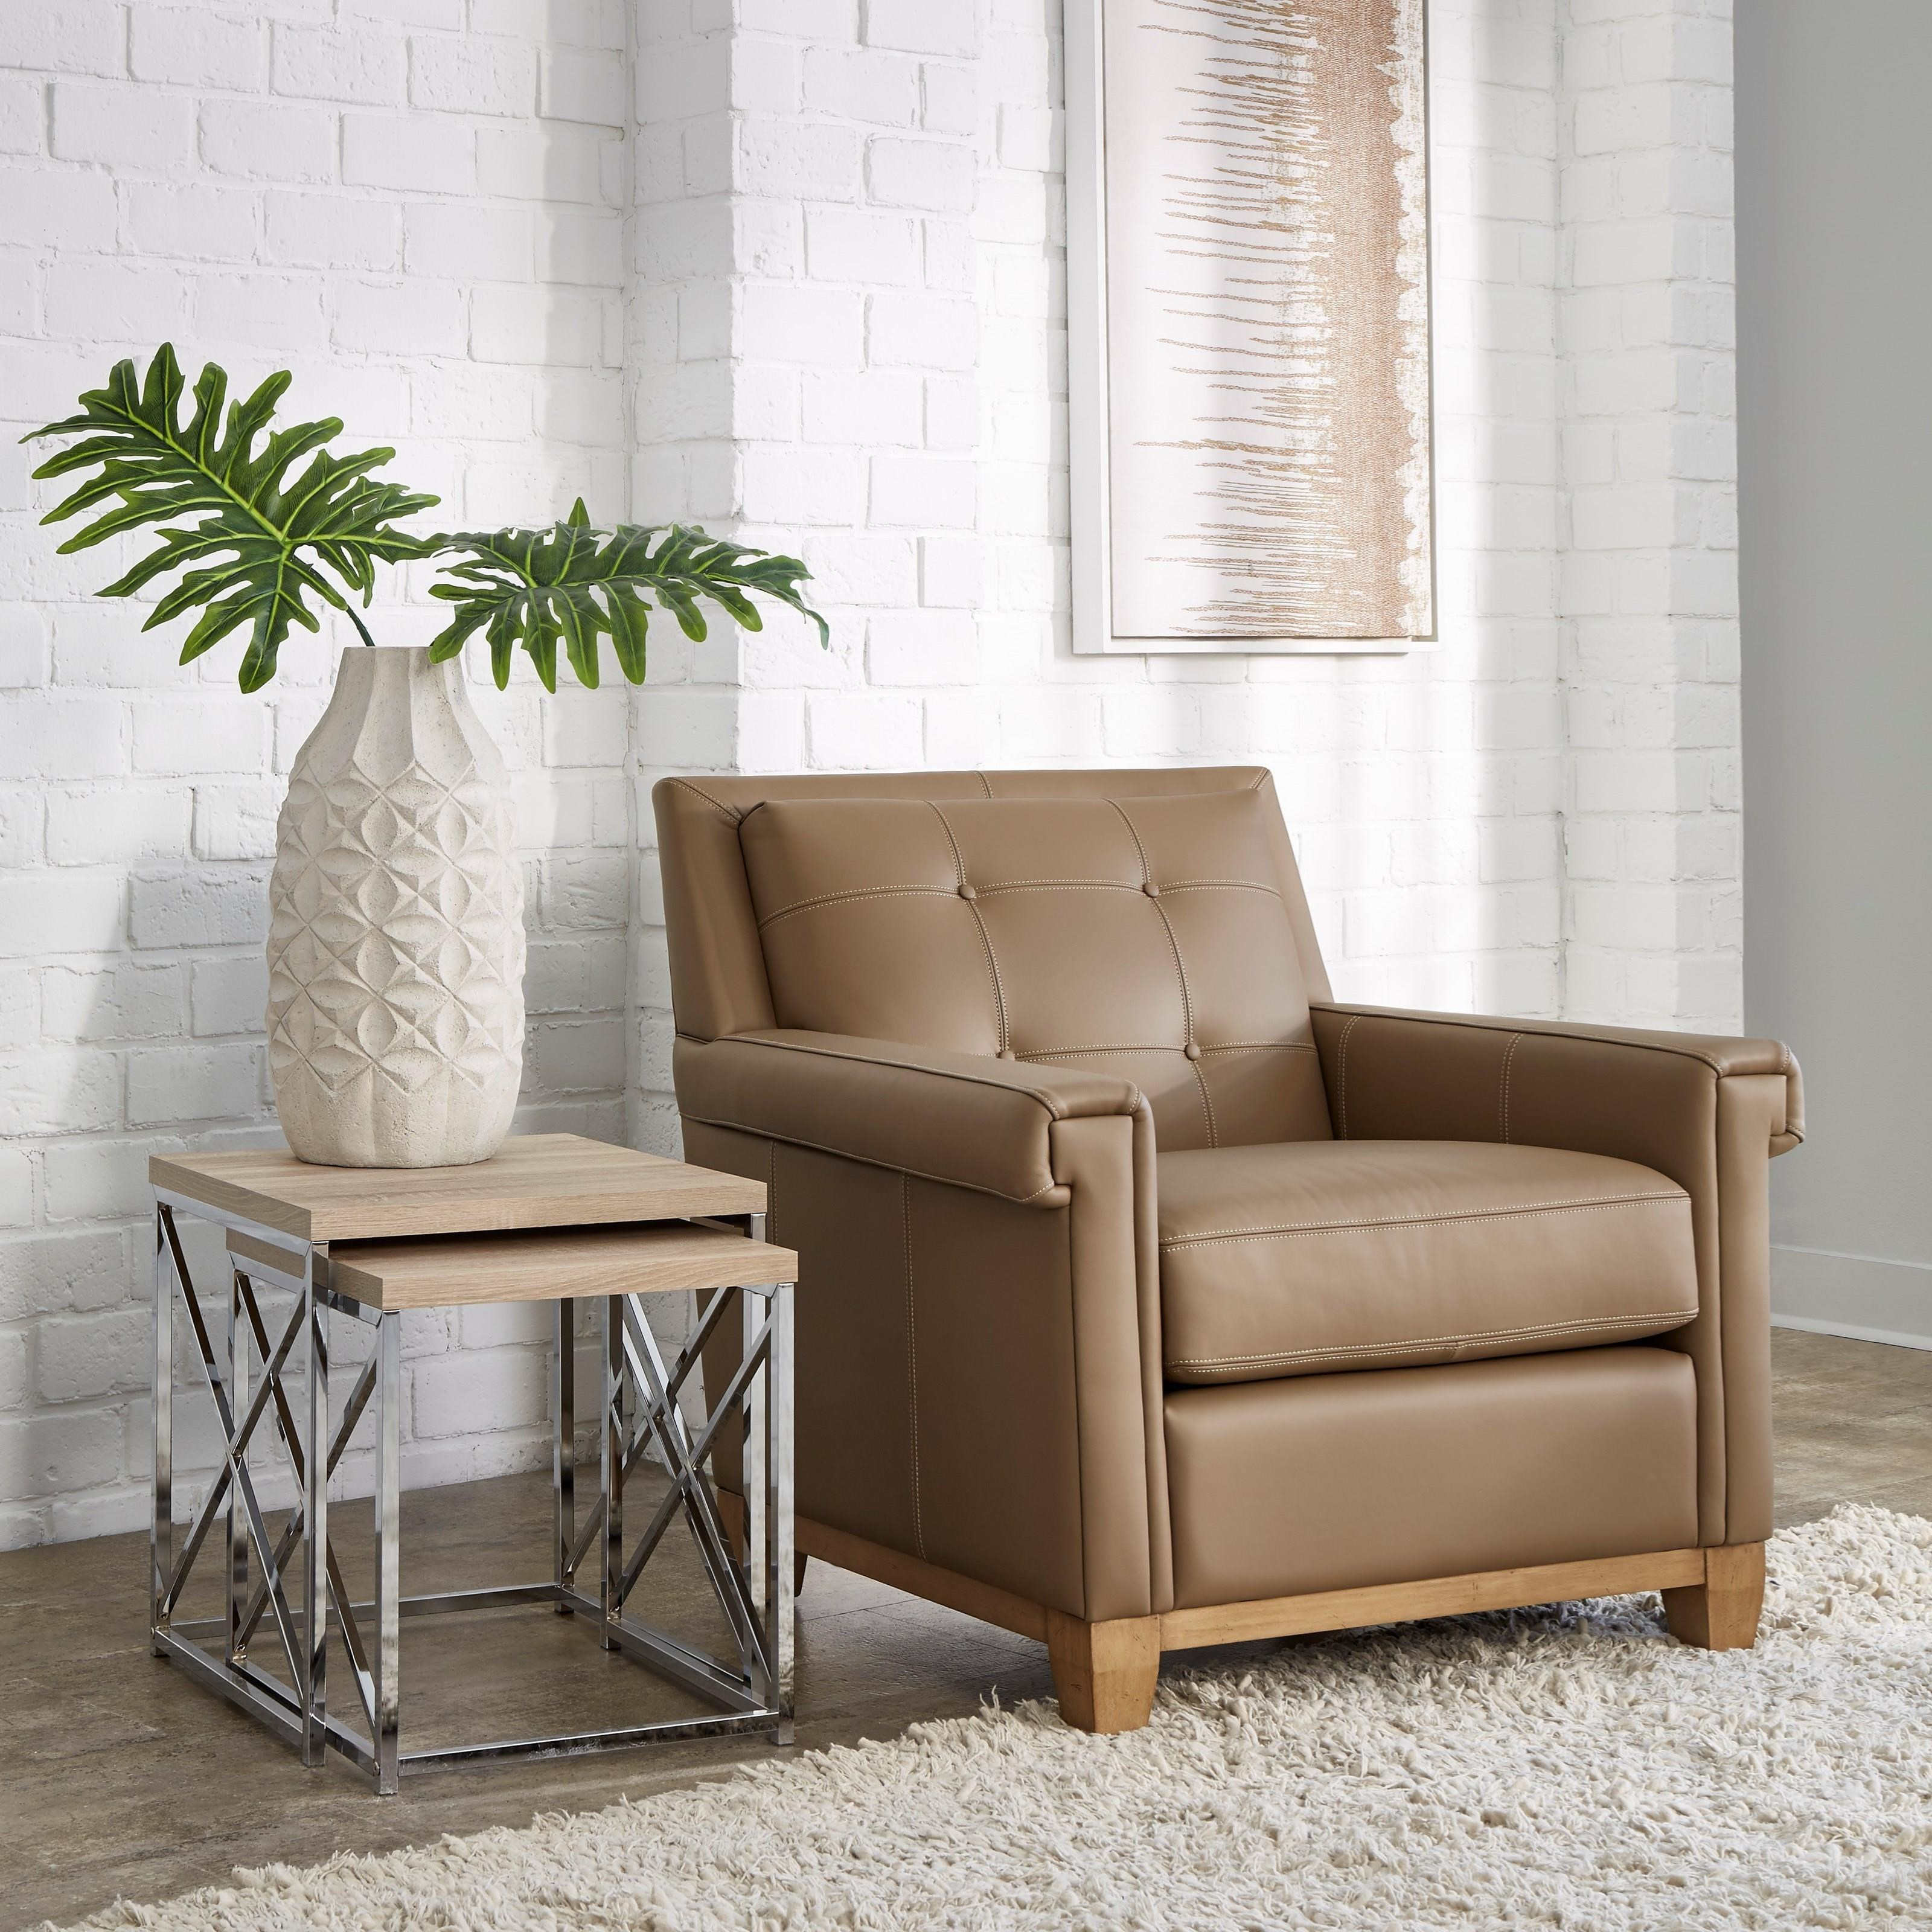 Bailey Matching Chair  by Pulaski Furniture at Westrich Furniture & Appliances